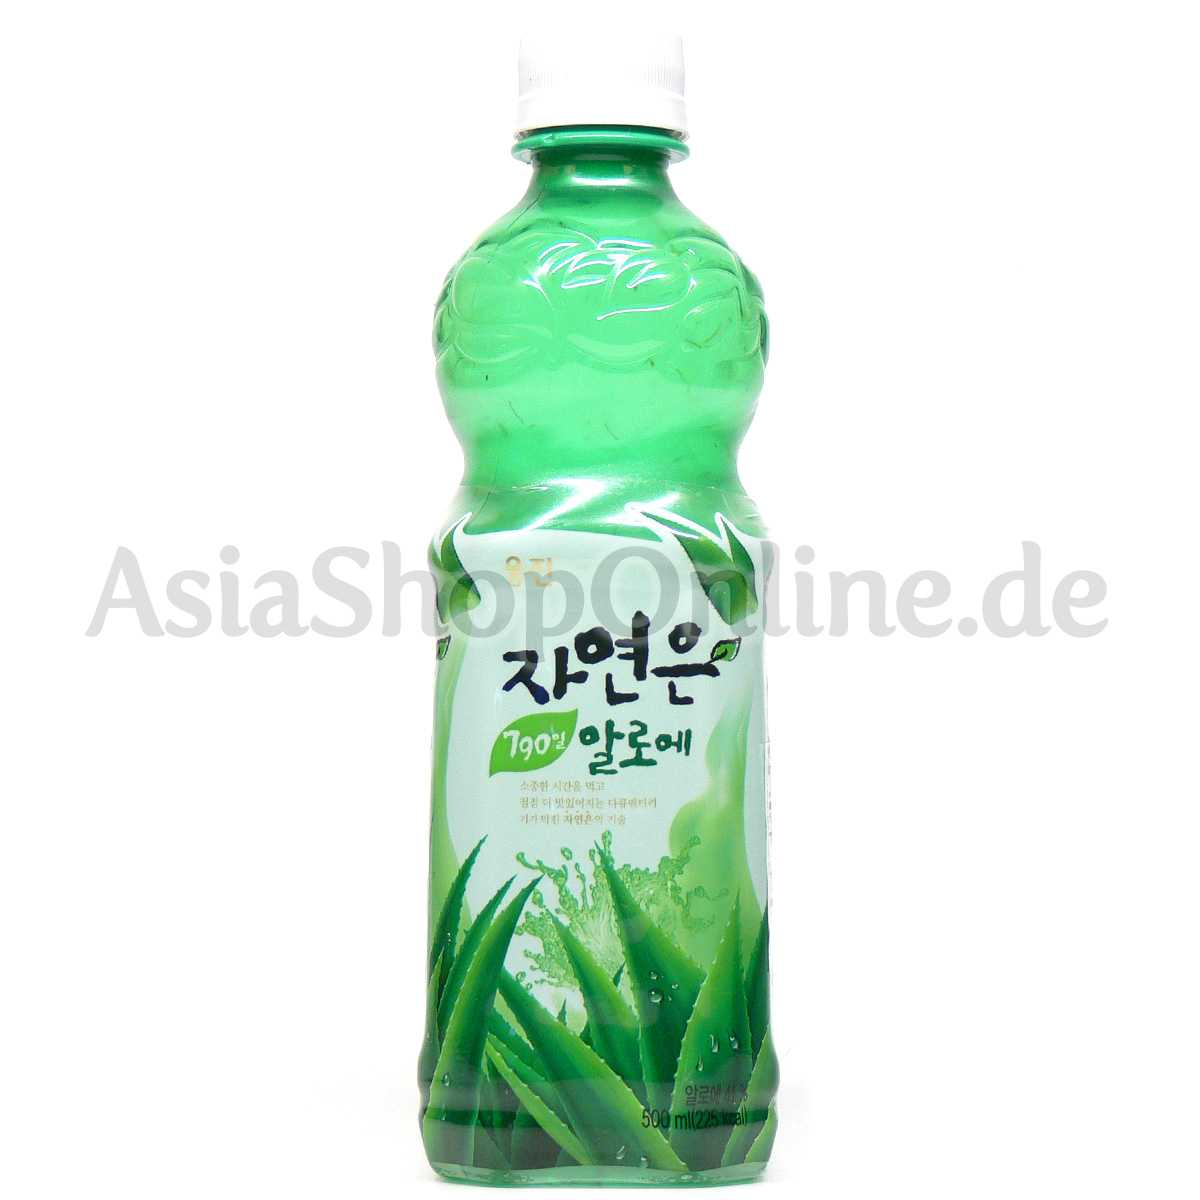 Pin Aloe Vera Freedom Drinking Gel Lr on Pinterest